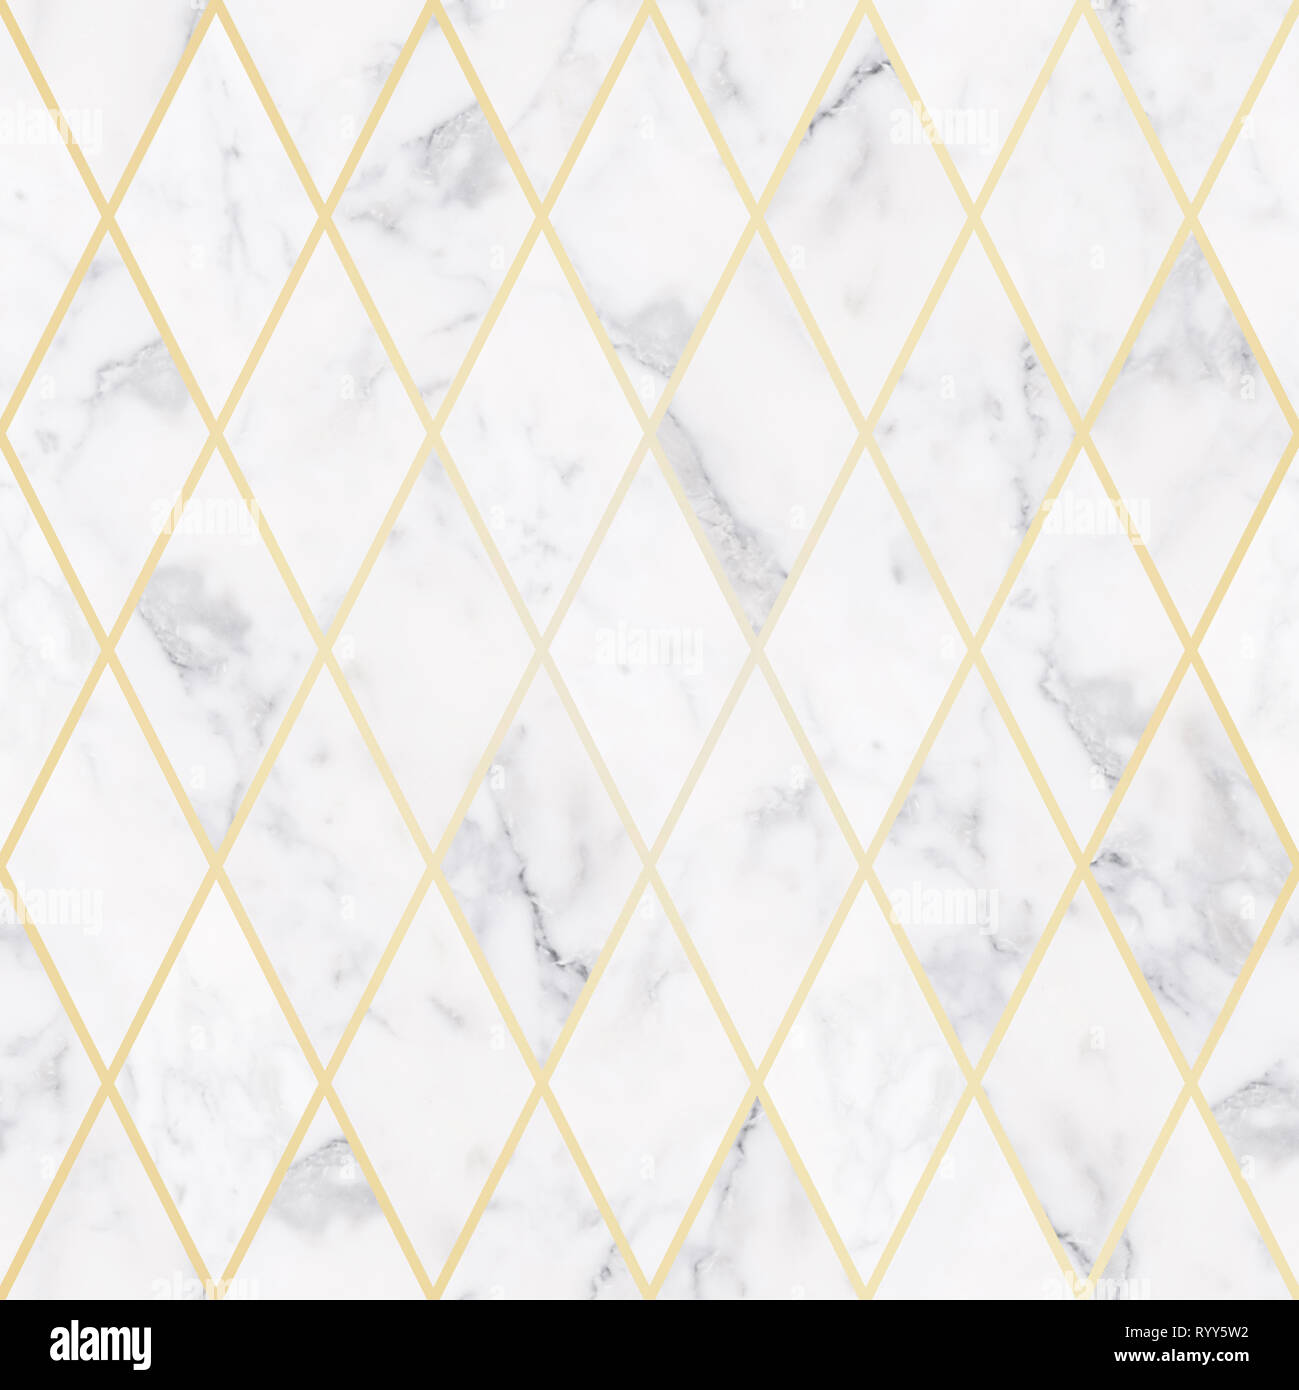 Marble Gold Texture Seamless Pattern High Resolution Stock Photography And Images Alamy